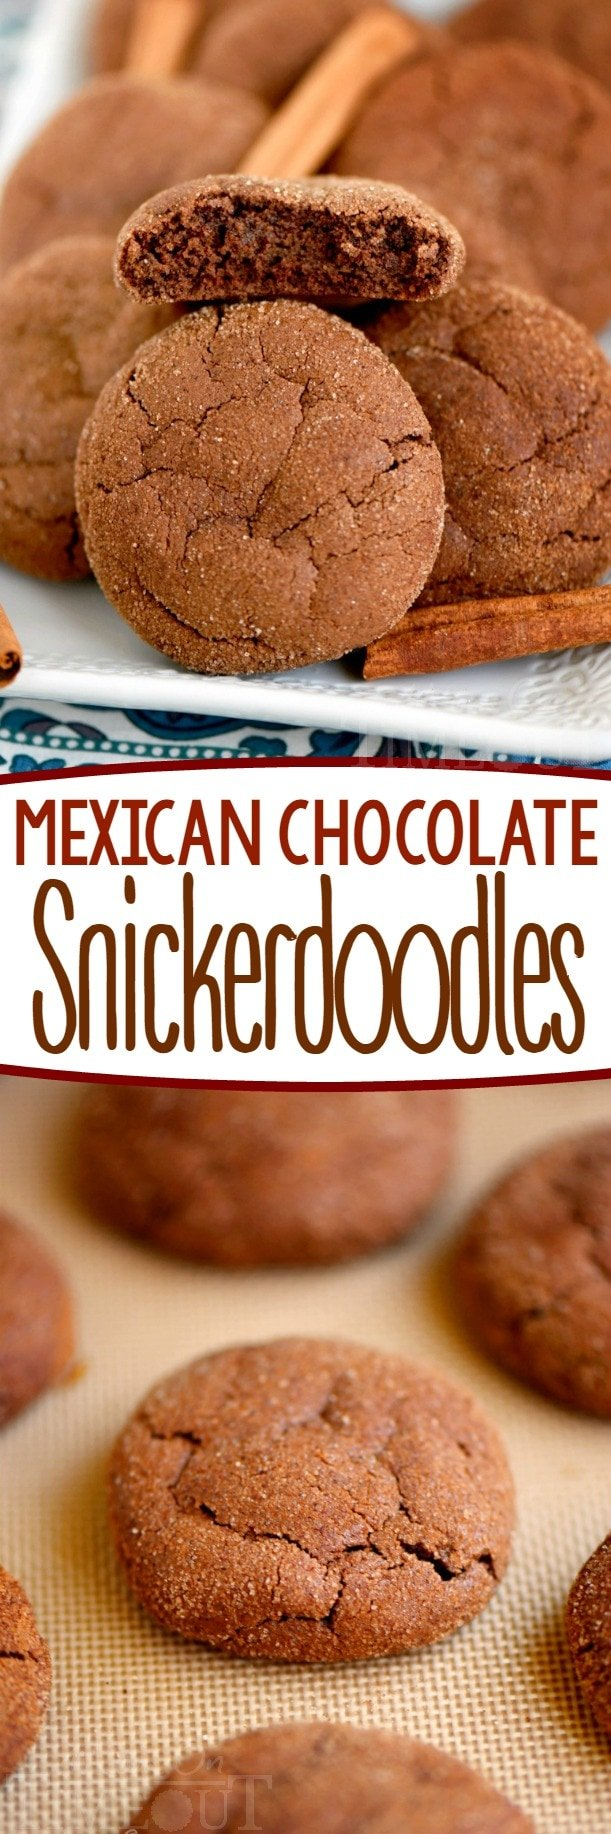 mexican-chocolate-snickerdoodles-collage